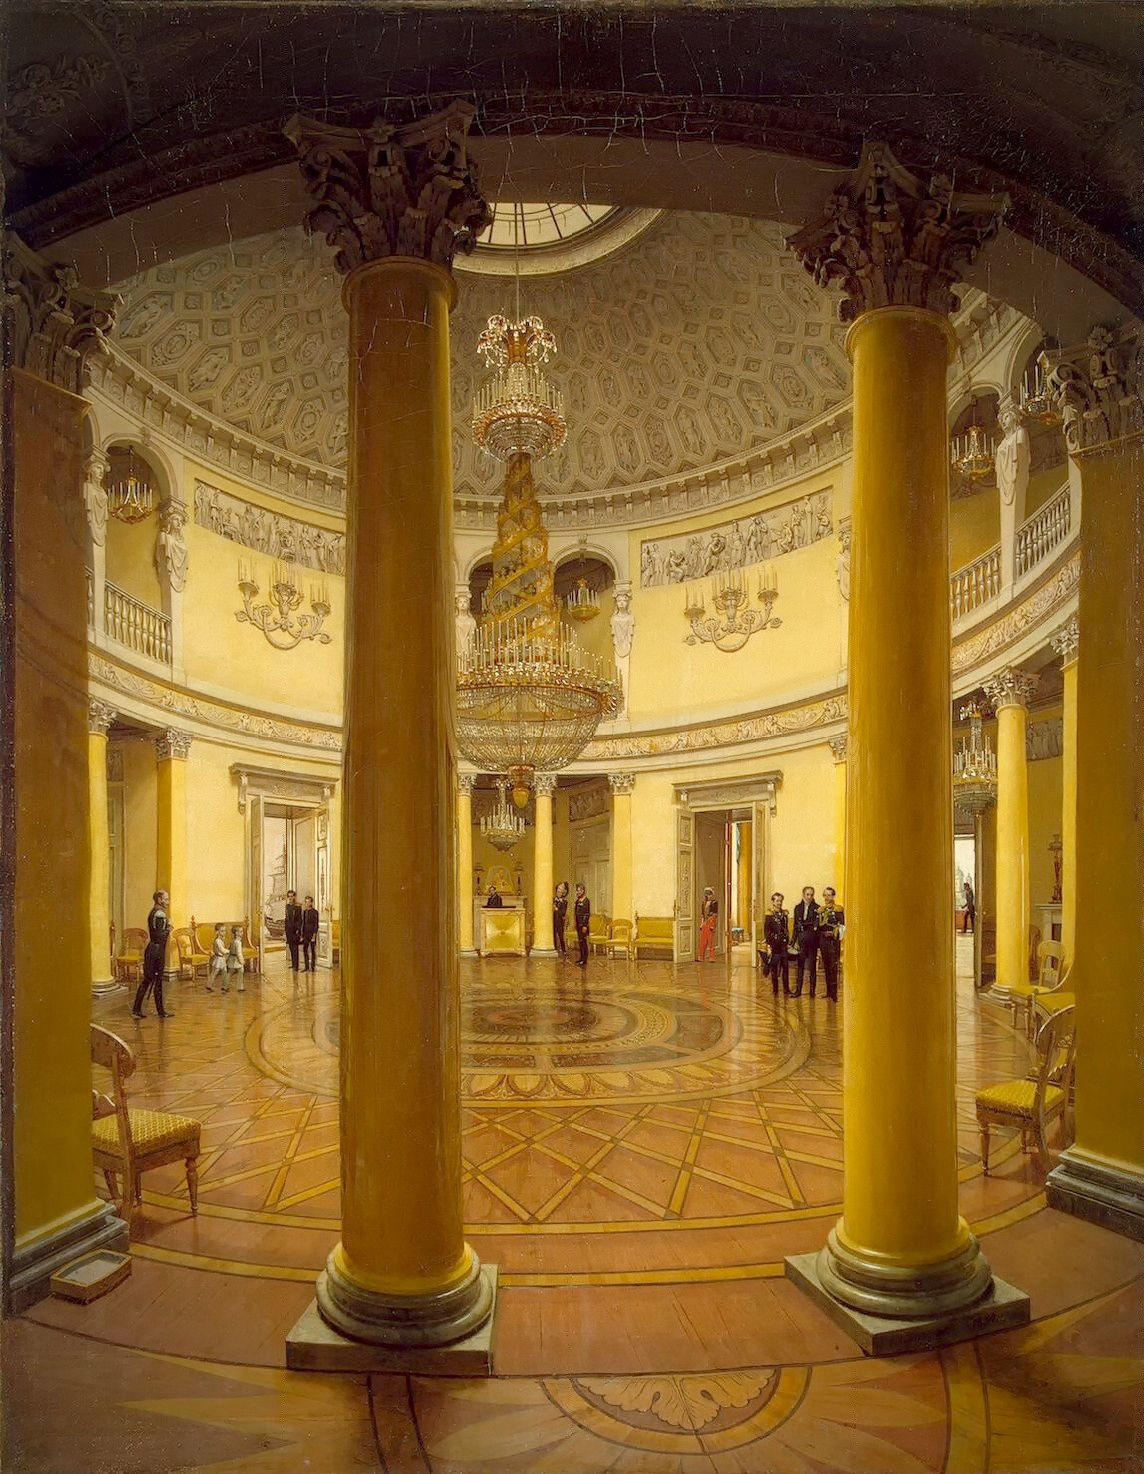 The Rotunda, 1833